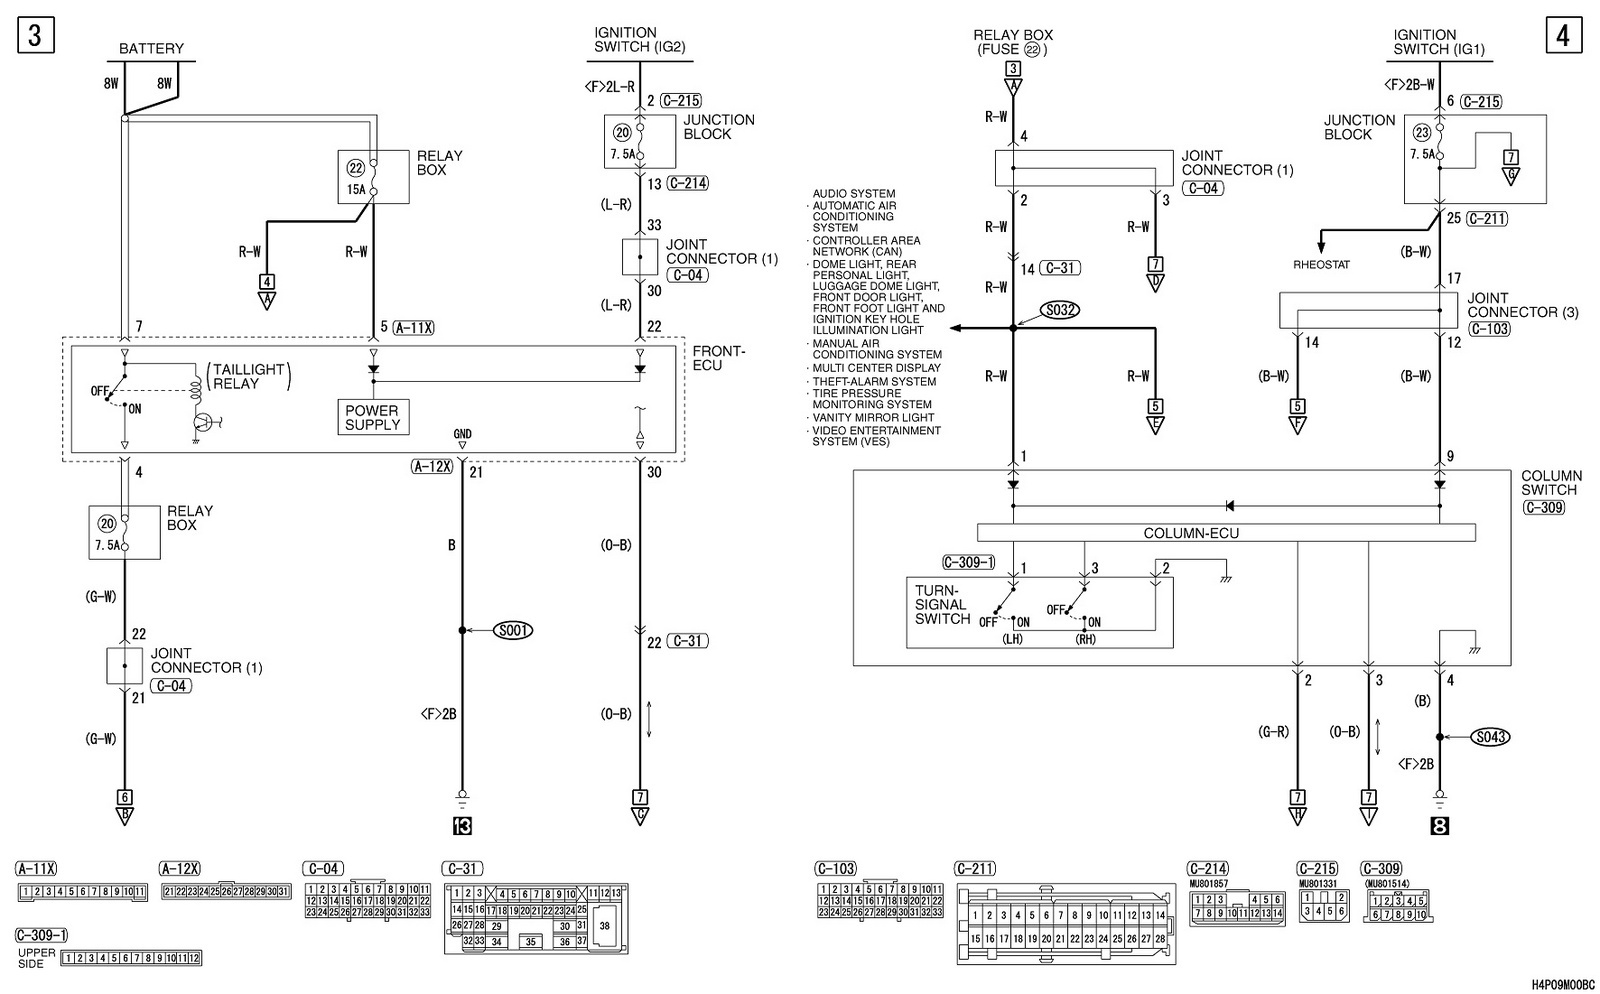 hight resolution of 2005 mitsubishi galant wiring diagram wiring diagrams rh 5 vesterbro de 2001 eclipse radio wiring diagram 2001 eclipse radio wiring diagram